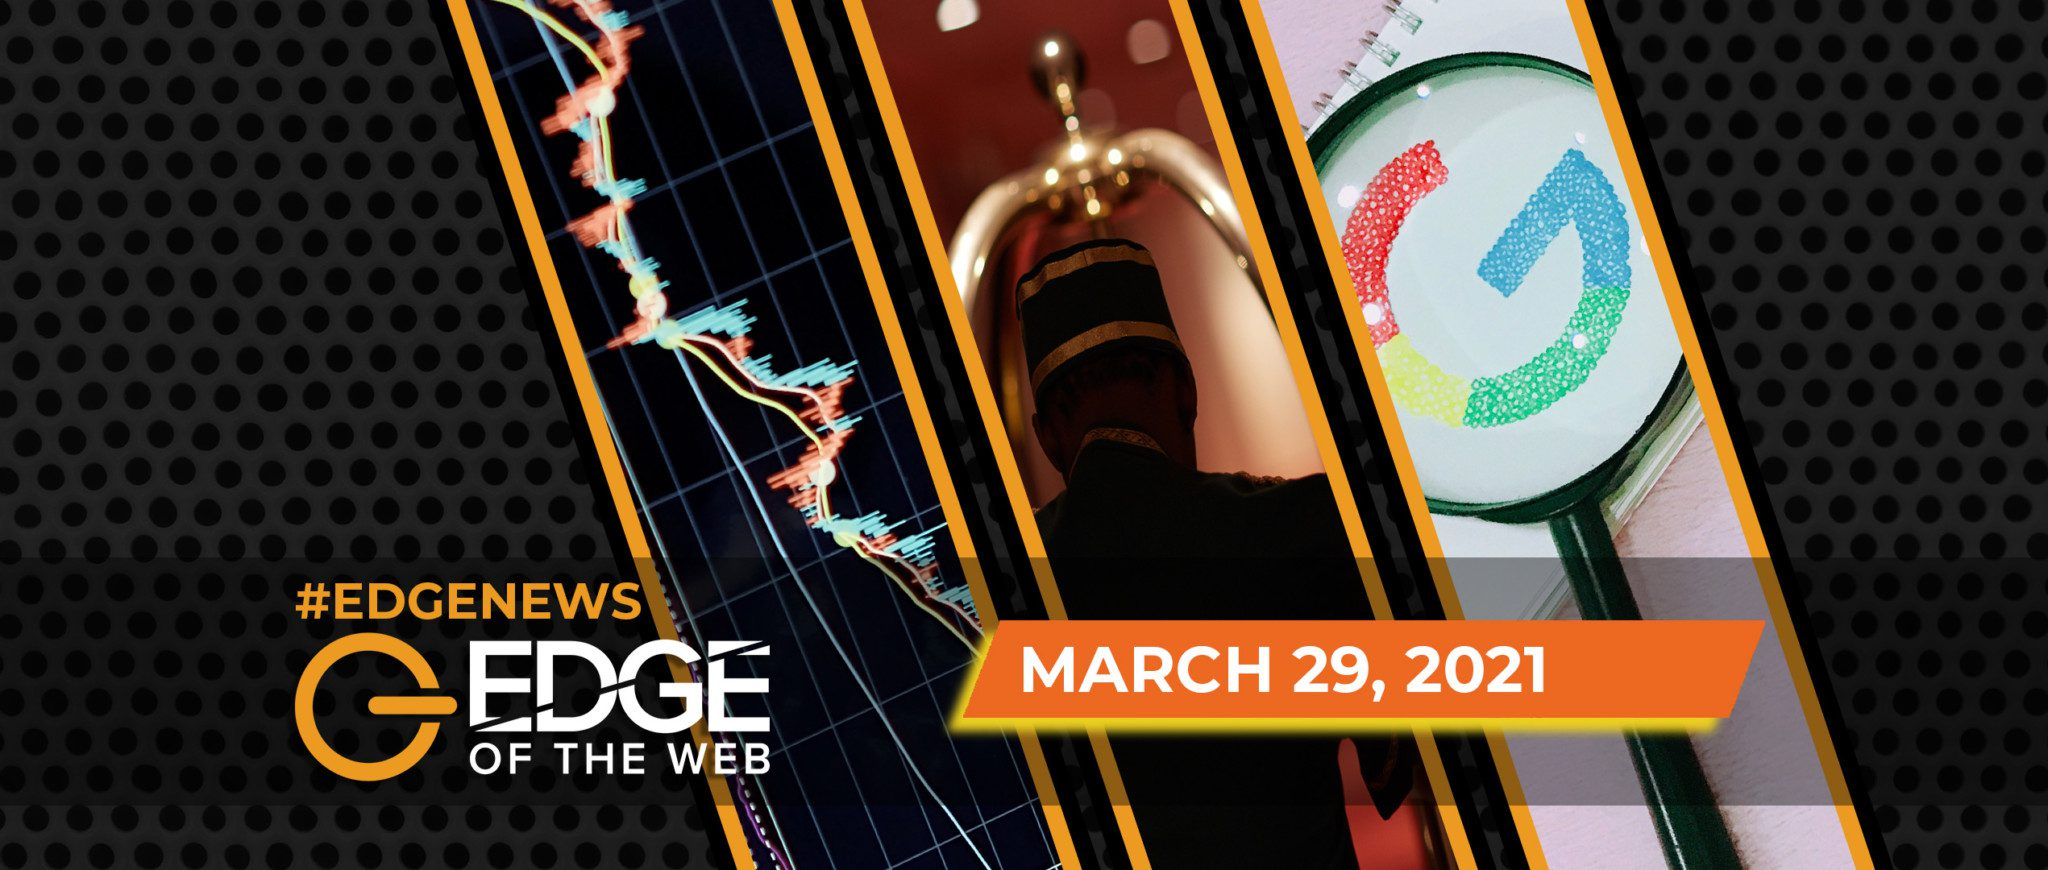 406 | News from the EDGE: Week of March 29, 2021